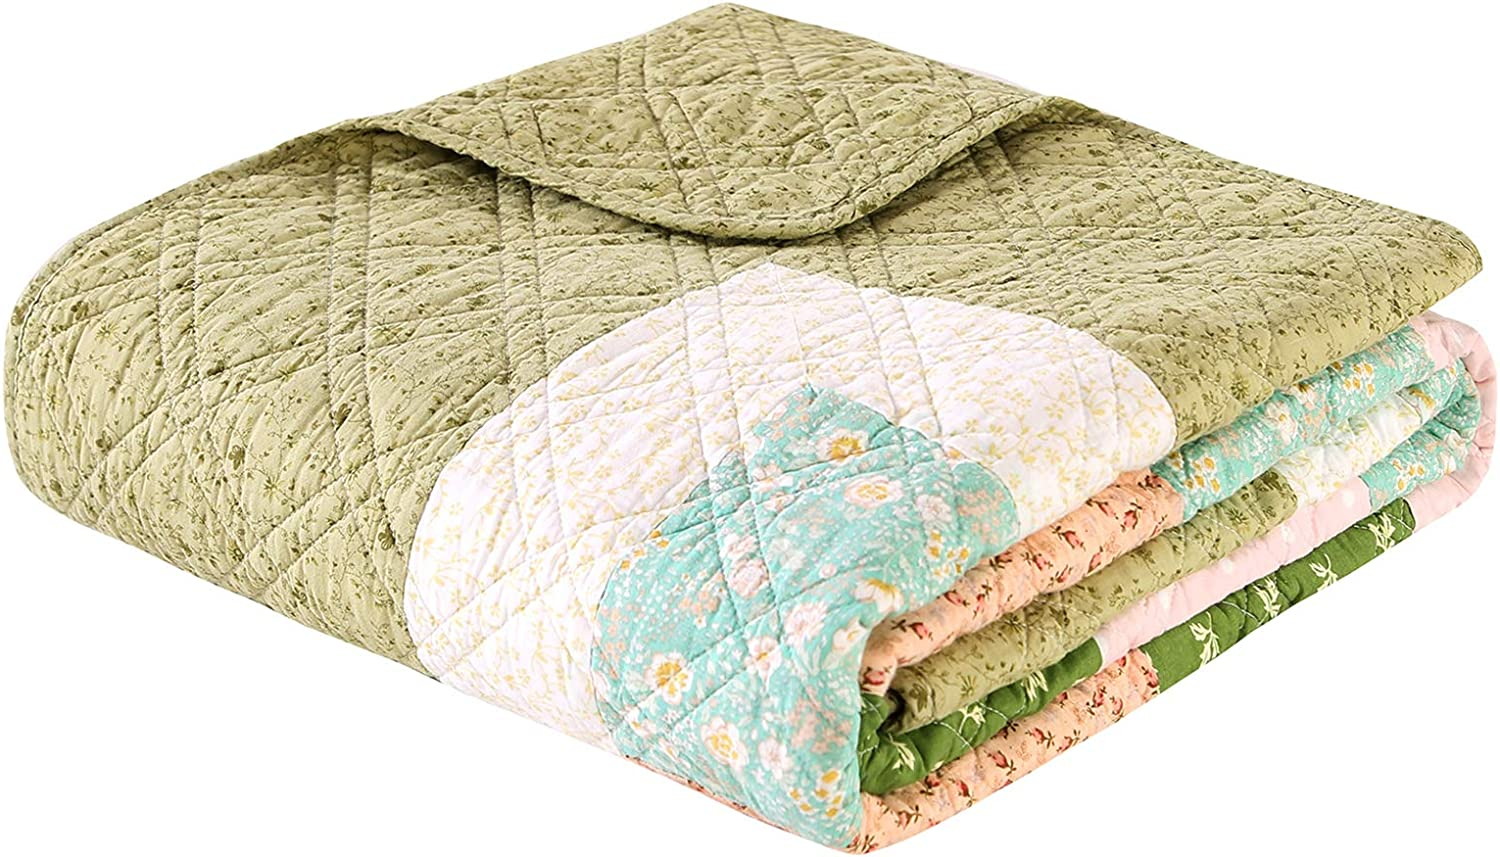 60x80 Green, Twin KINBEDY Patchwork Quilt 100/% Cotton Reversible Floral Print Quilted Blankets Coverlets Bed Throws for Couch Sofa Twin Bed